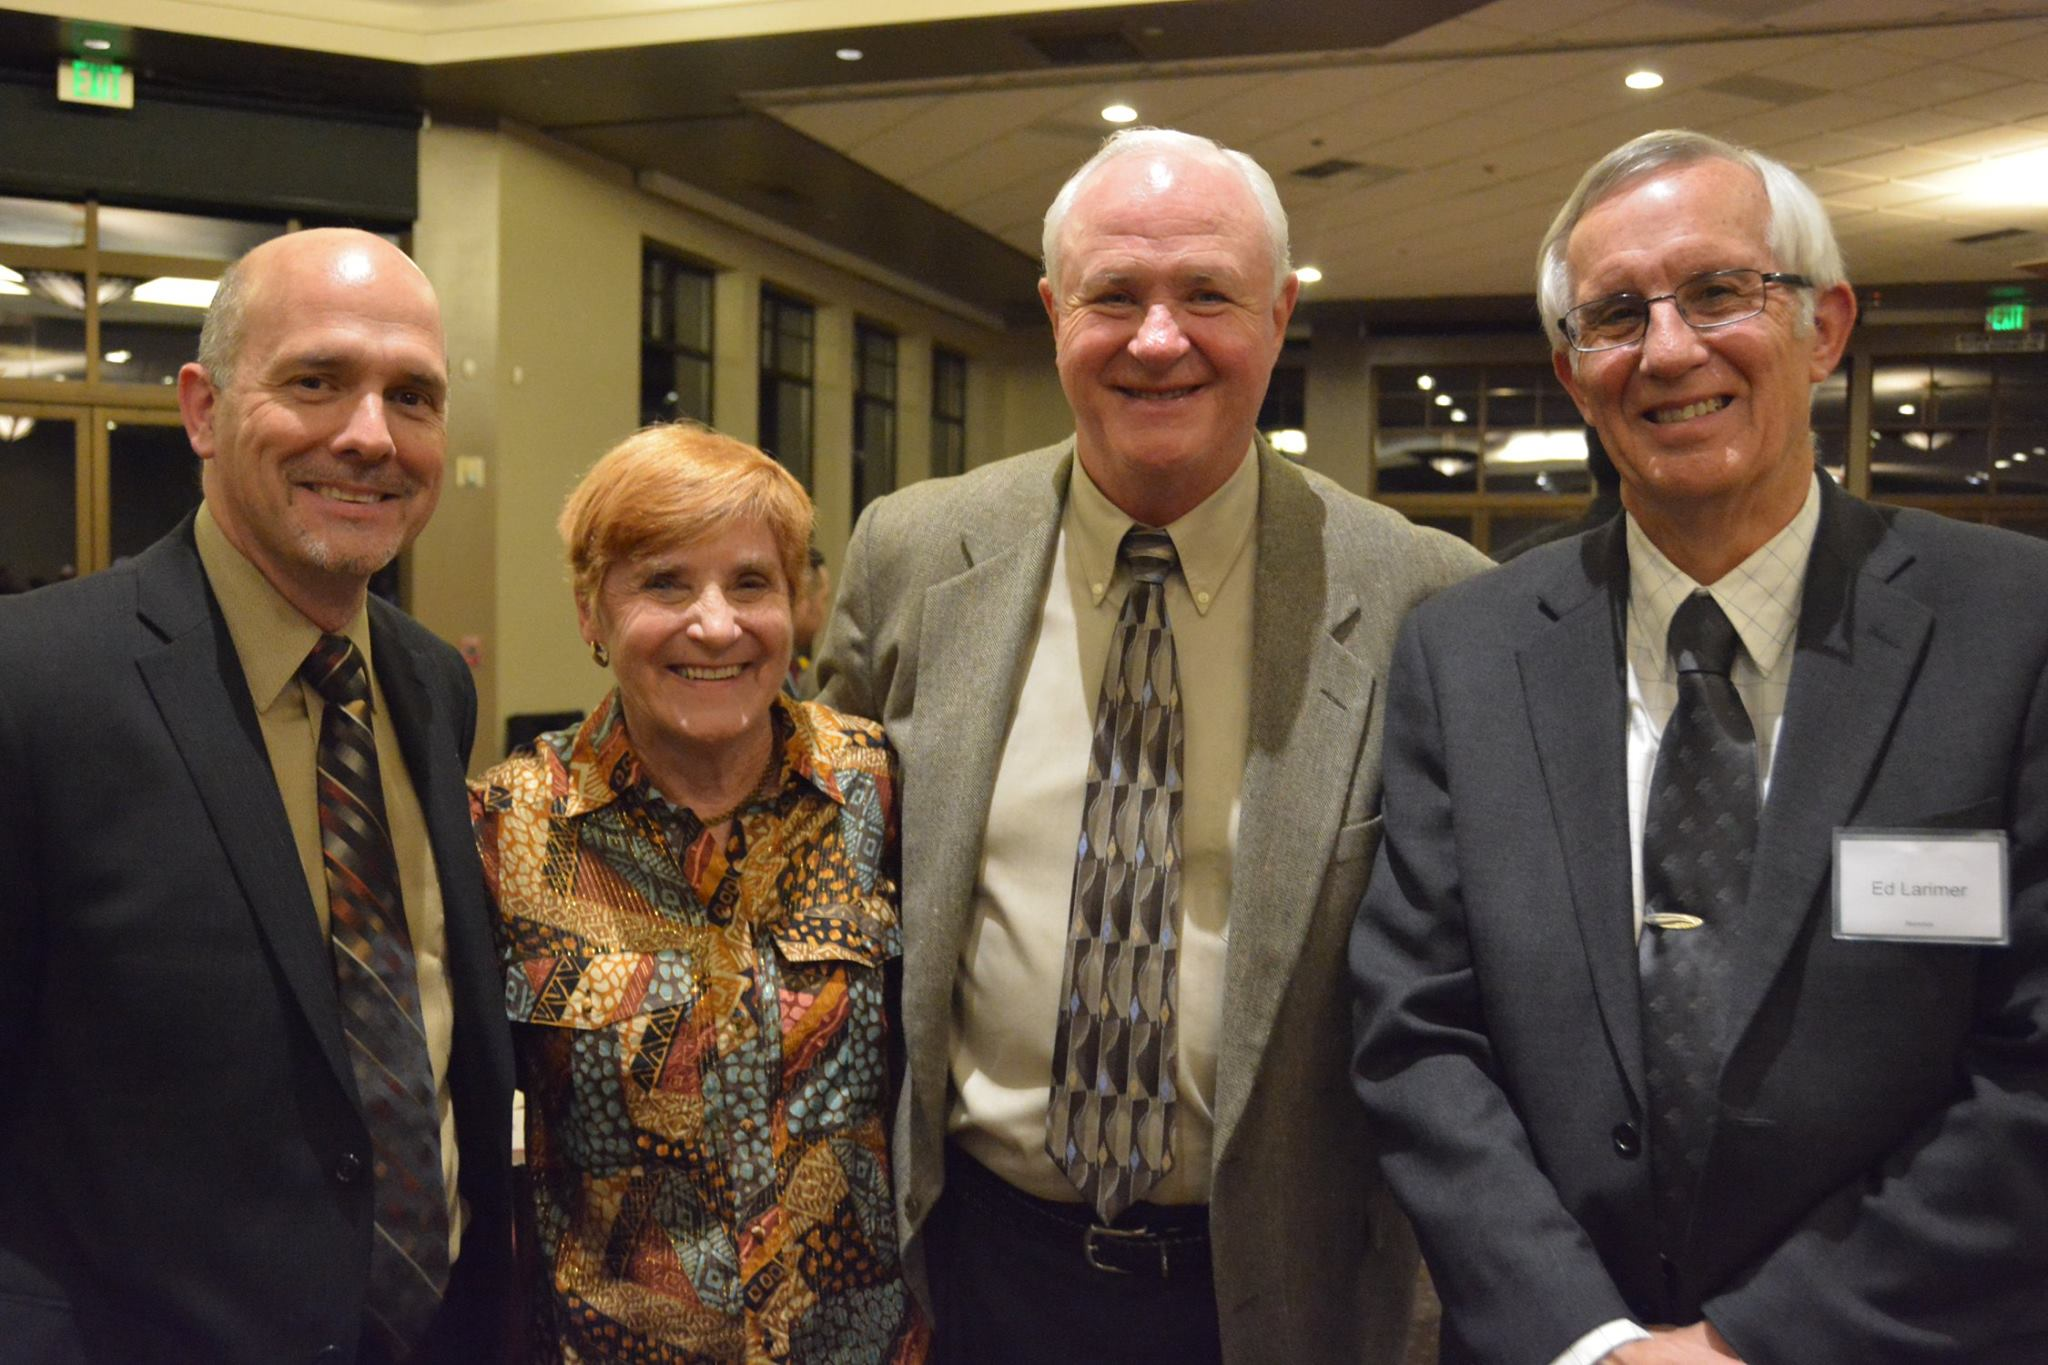 Board directors Gary DeGuire, Jack Schelgel, and Ed Larimer (L to R) with Priscilla Schlegel (2nd to left)